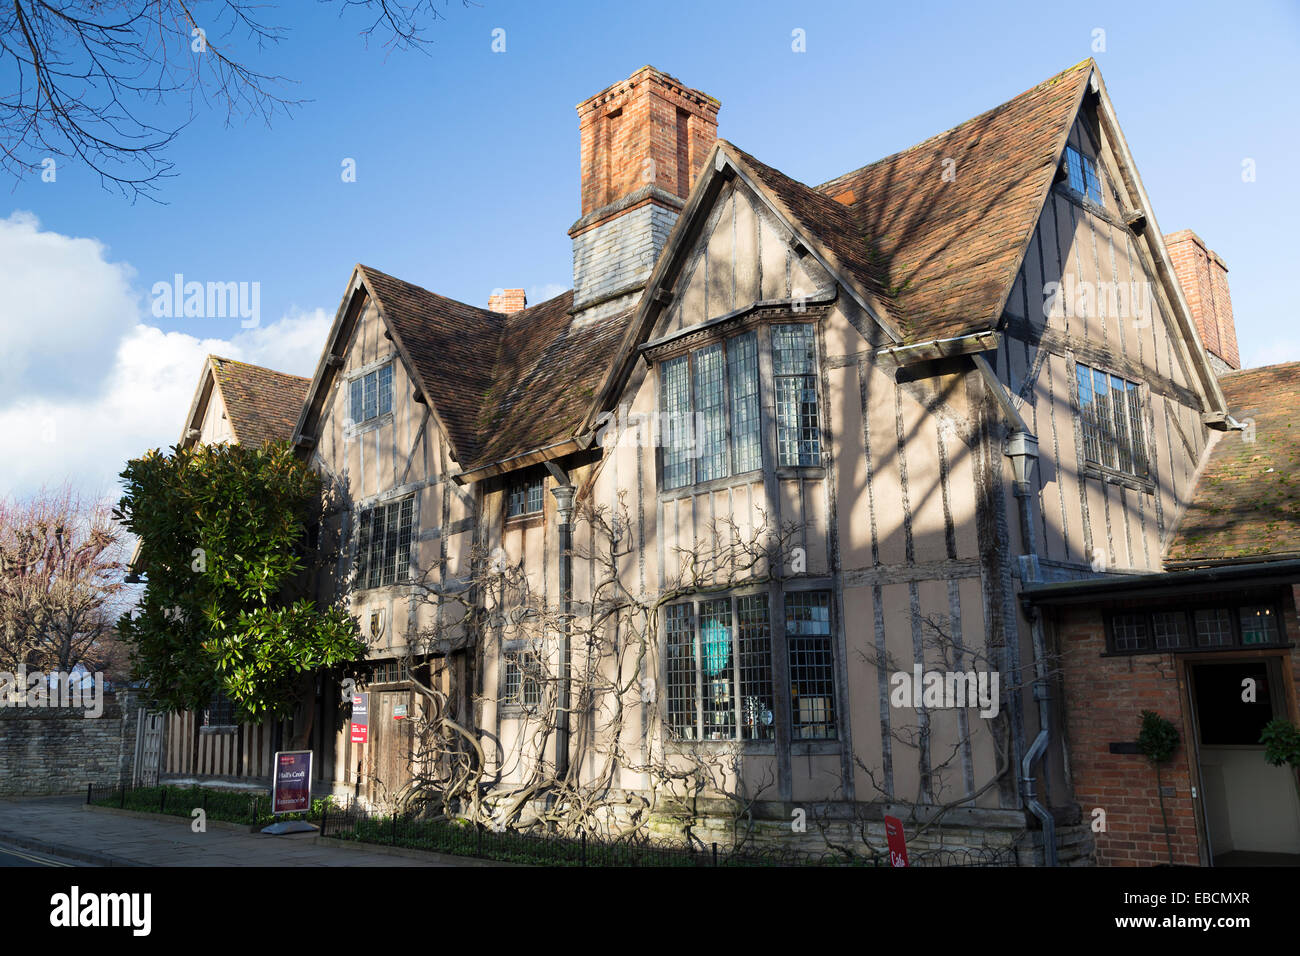 UK, Warwickshire, Stratford On Avon, Hall's Croft, the home of Shakespear's daughter. - Stock Image